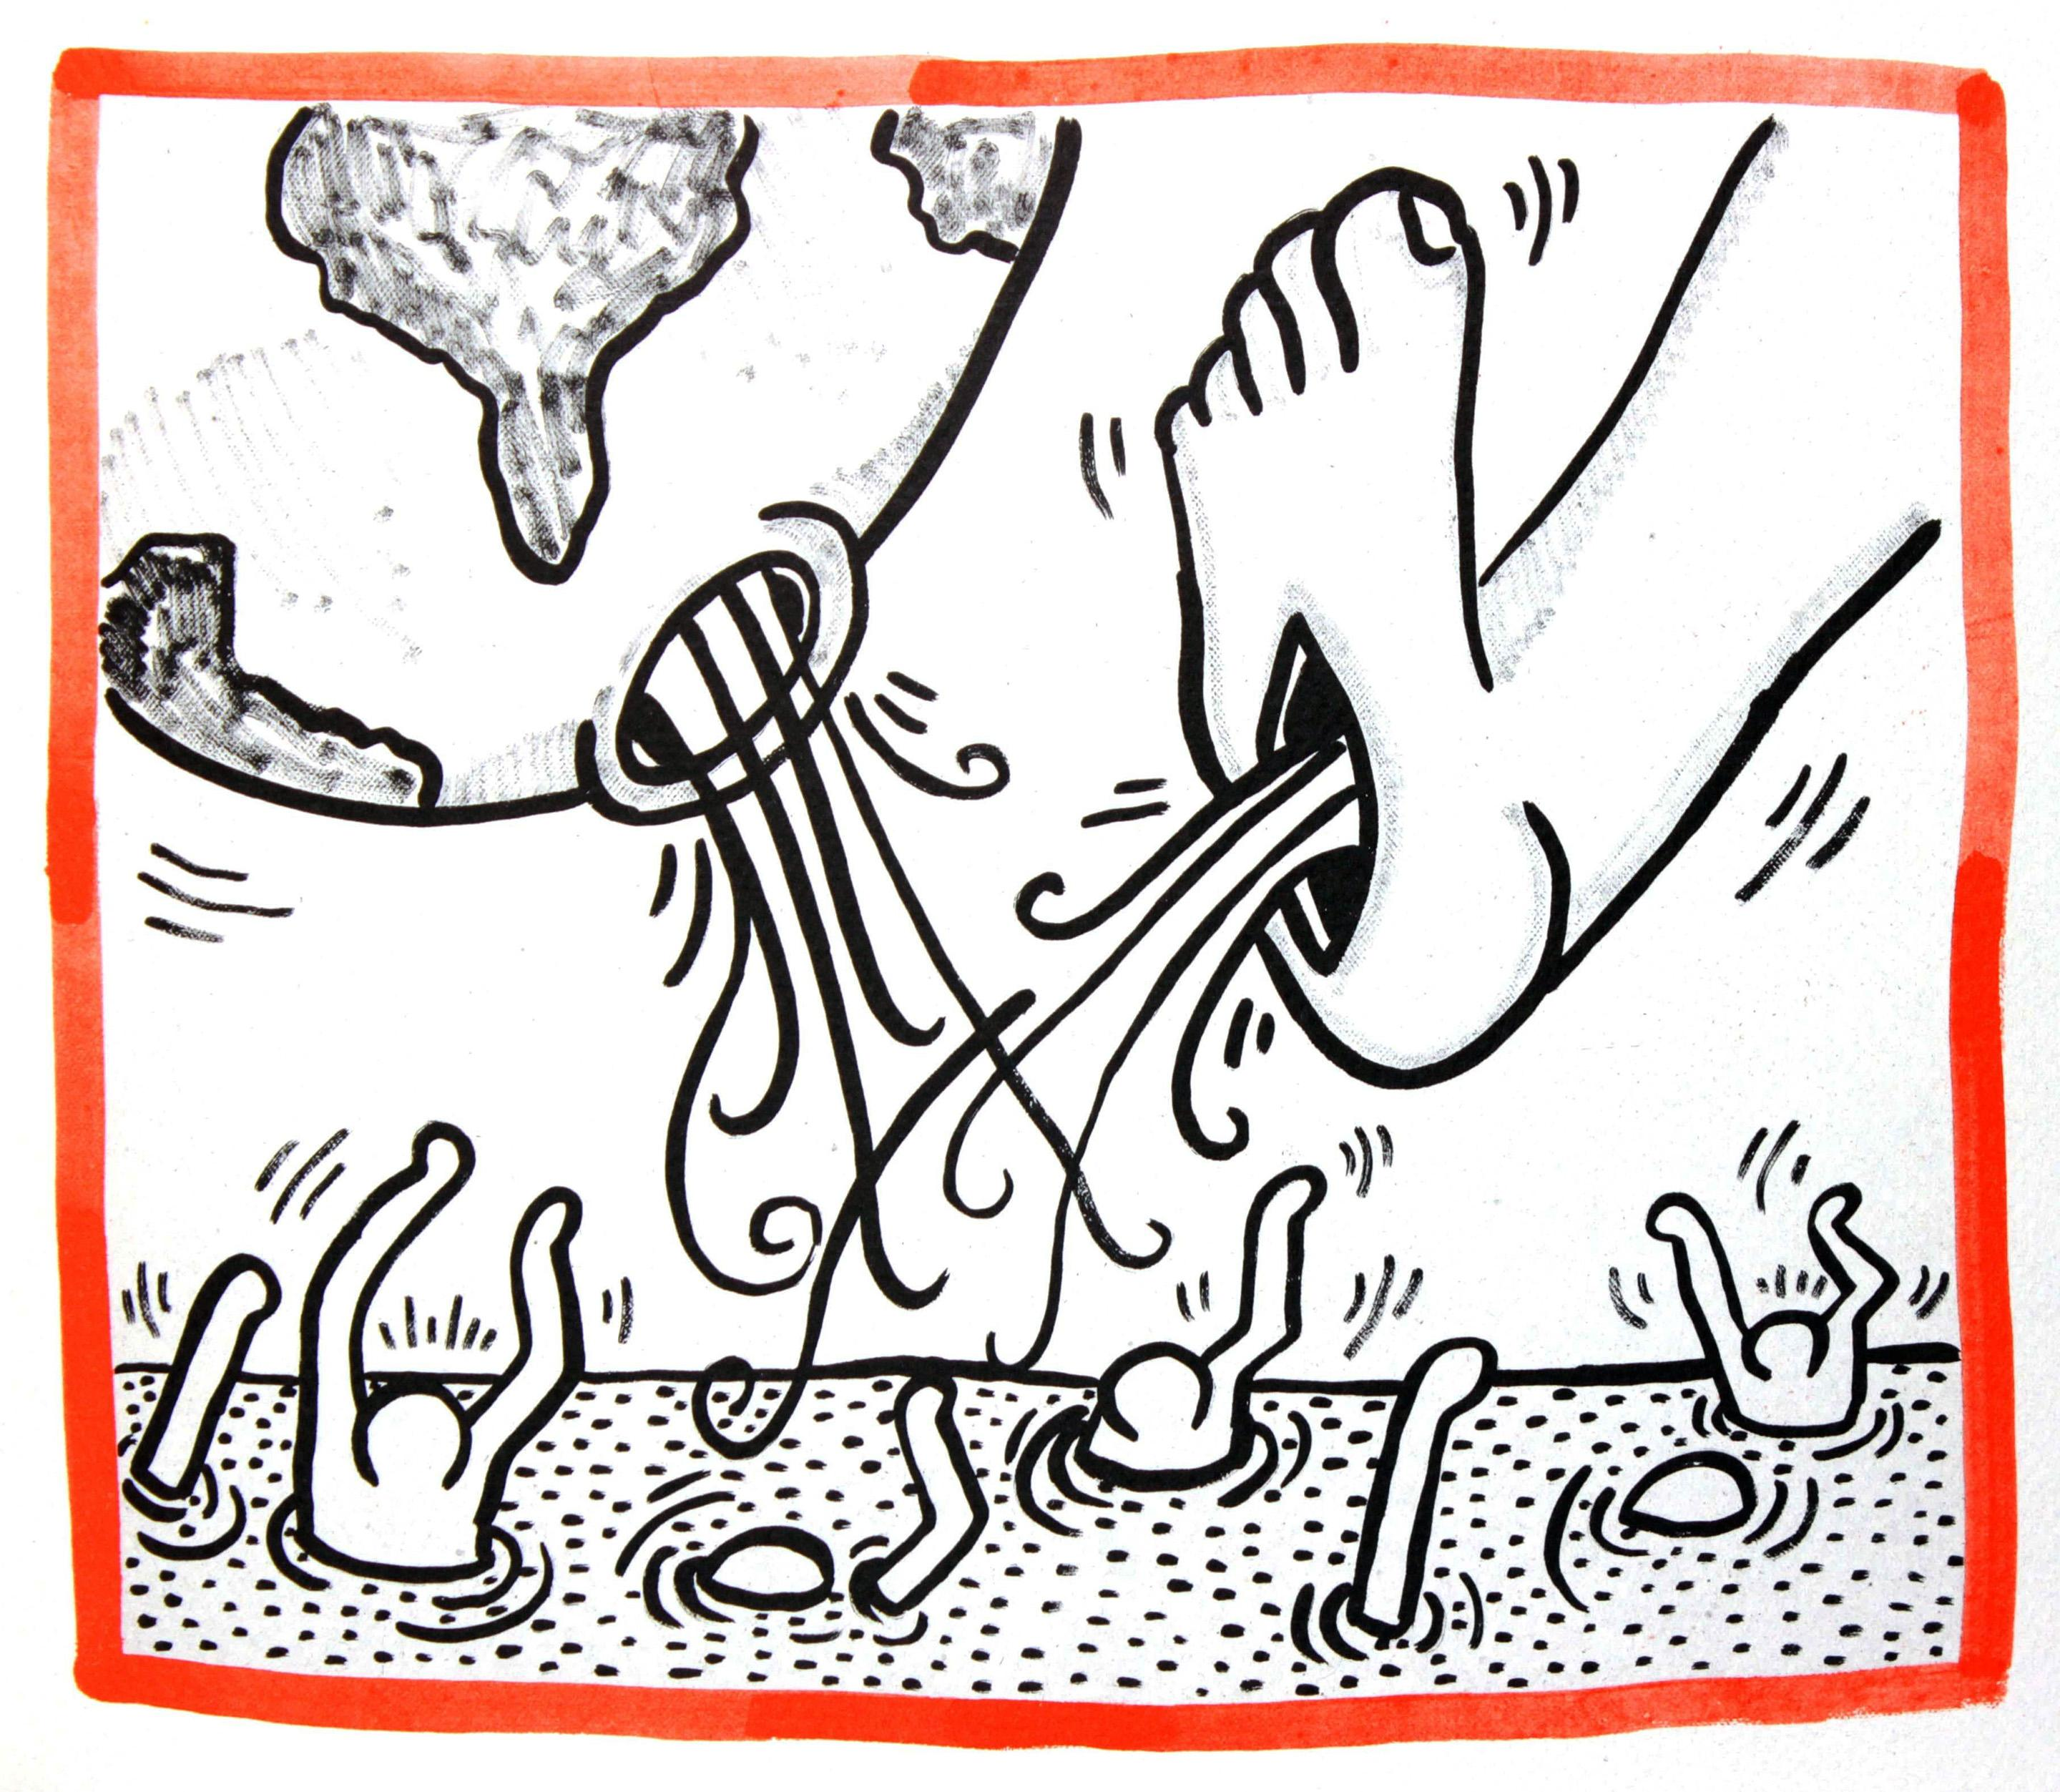 Lithograph from Keith Haring Against All Odds 1990